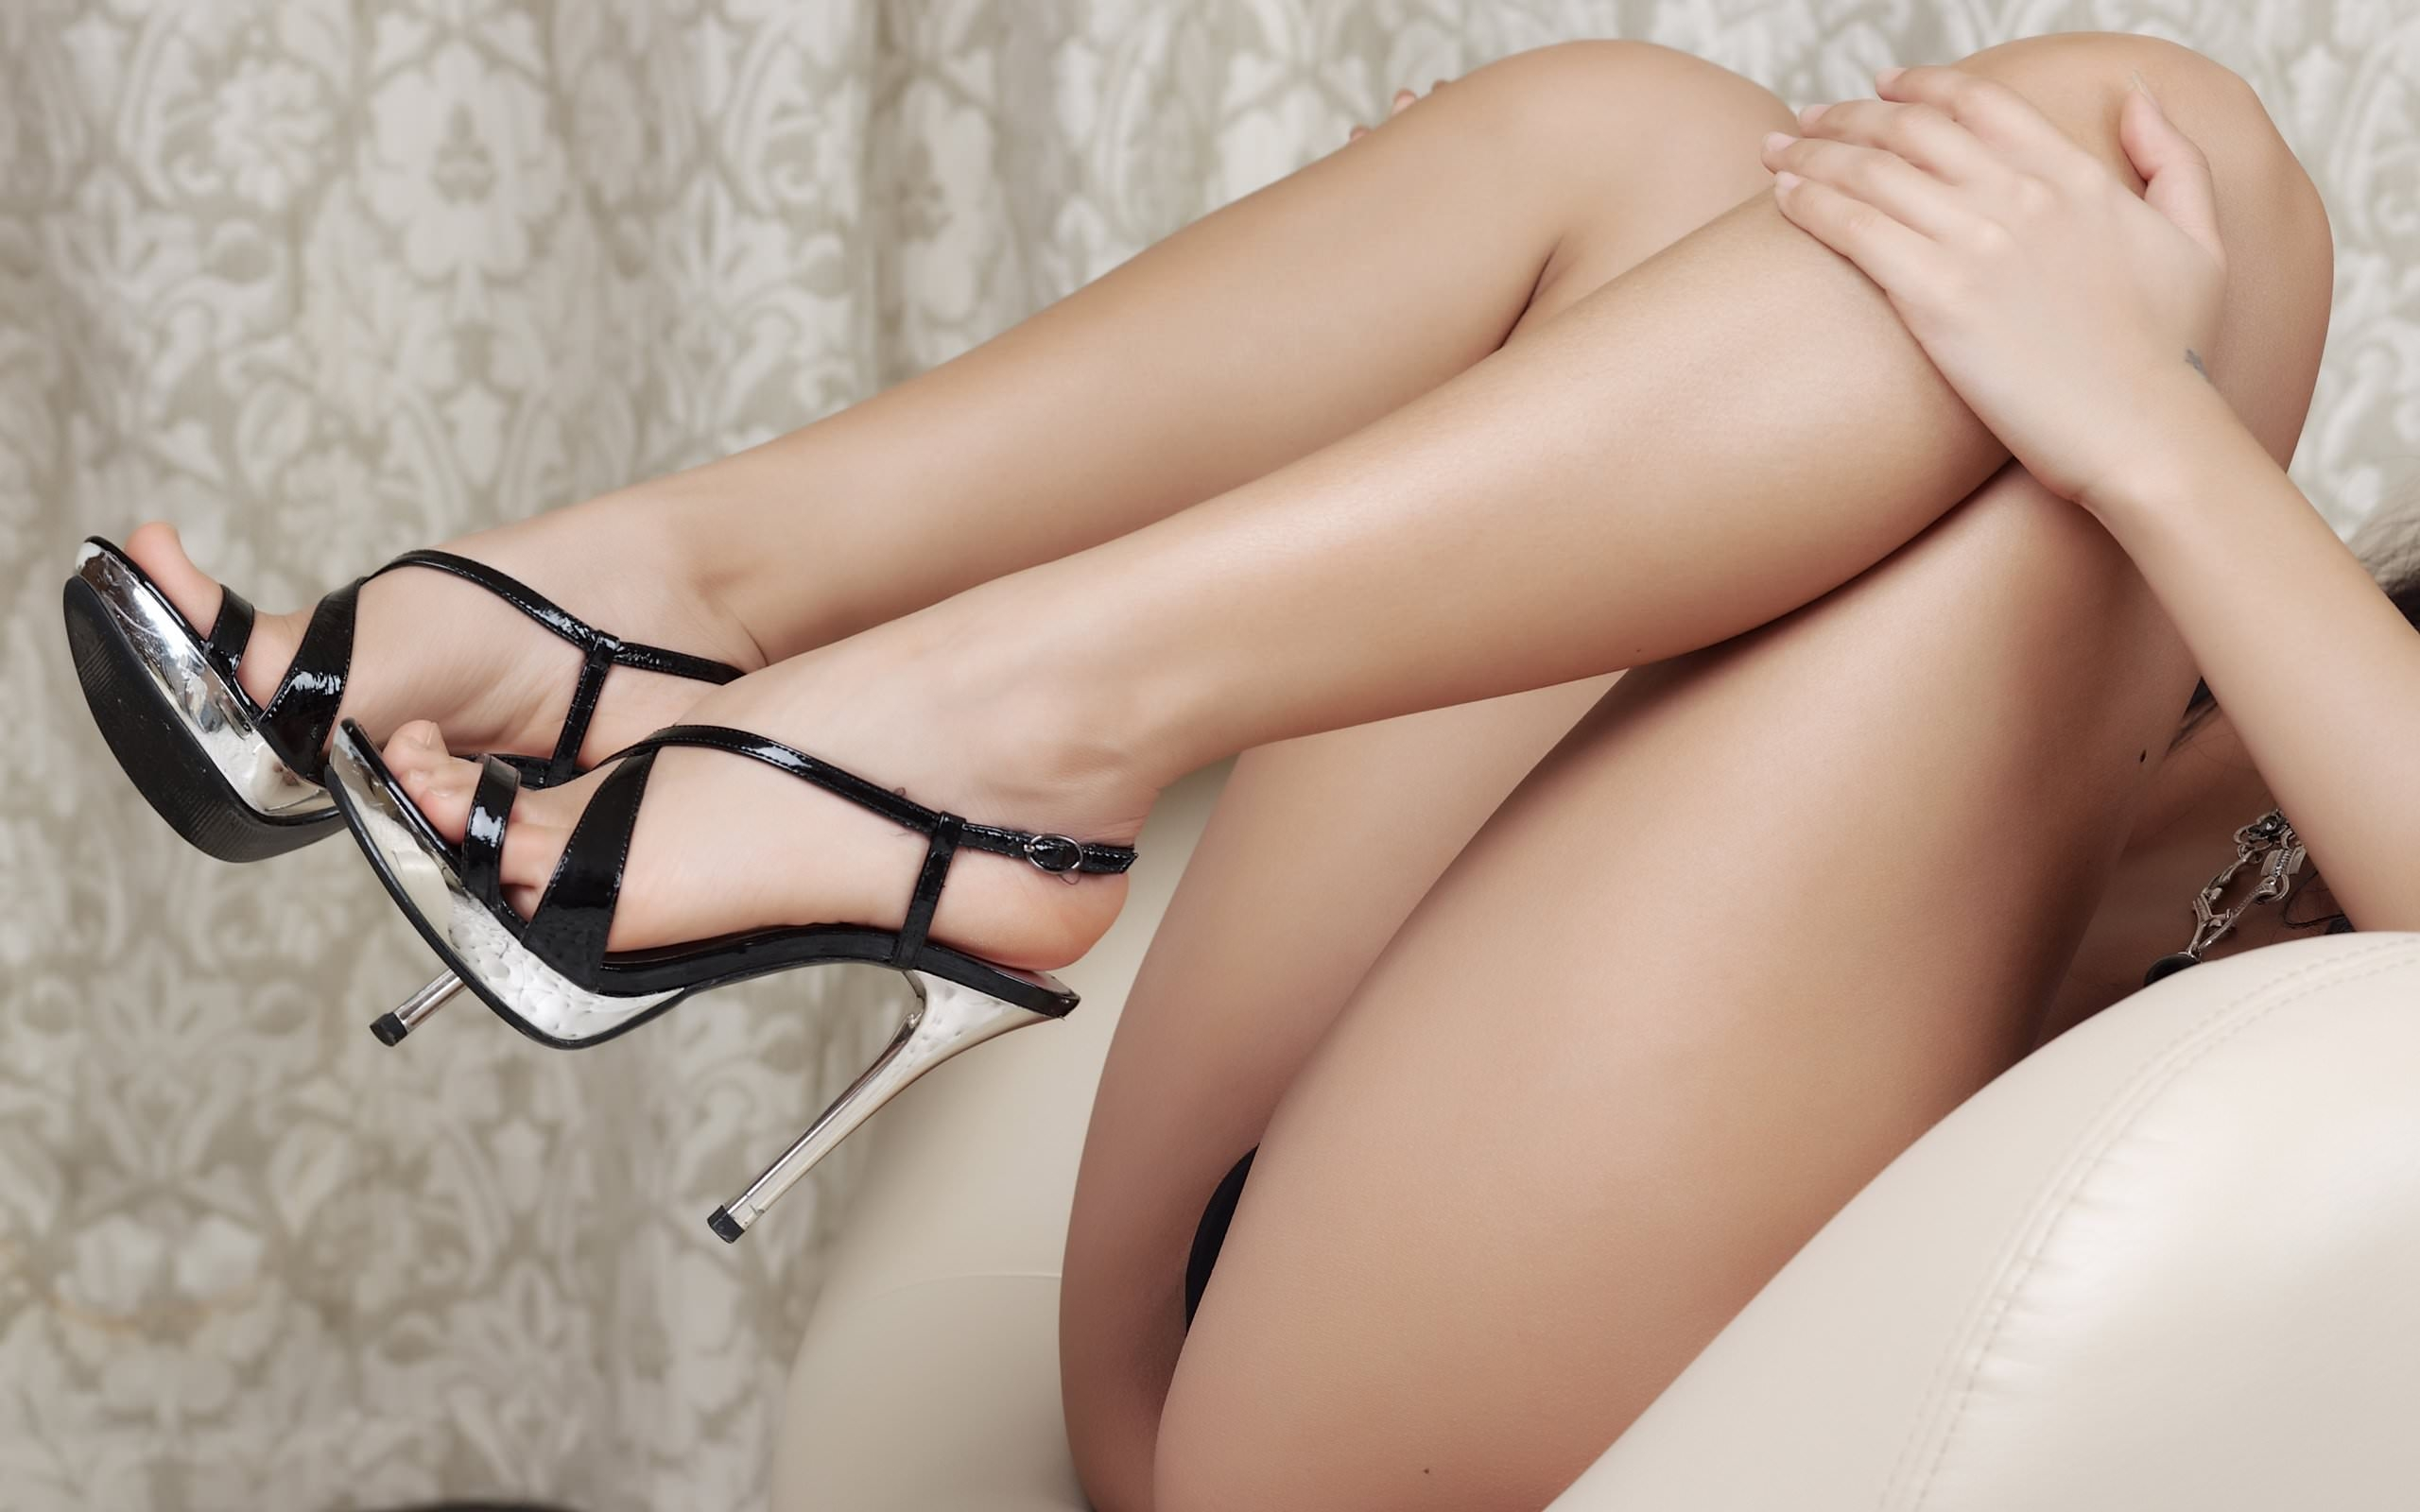 Sexy Woman In High Heels Free Stock Photo